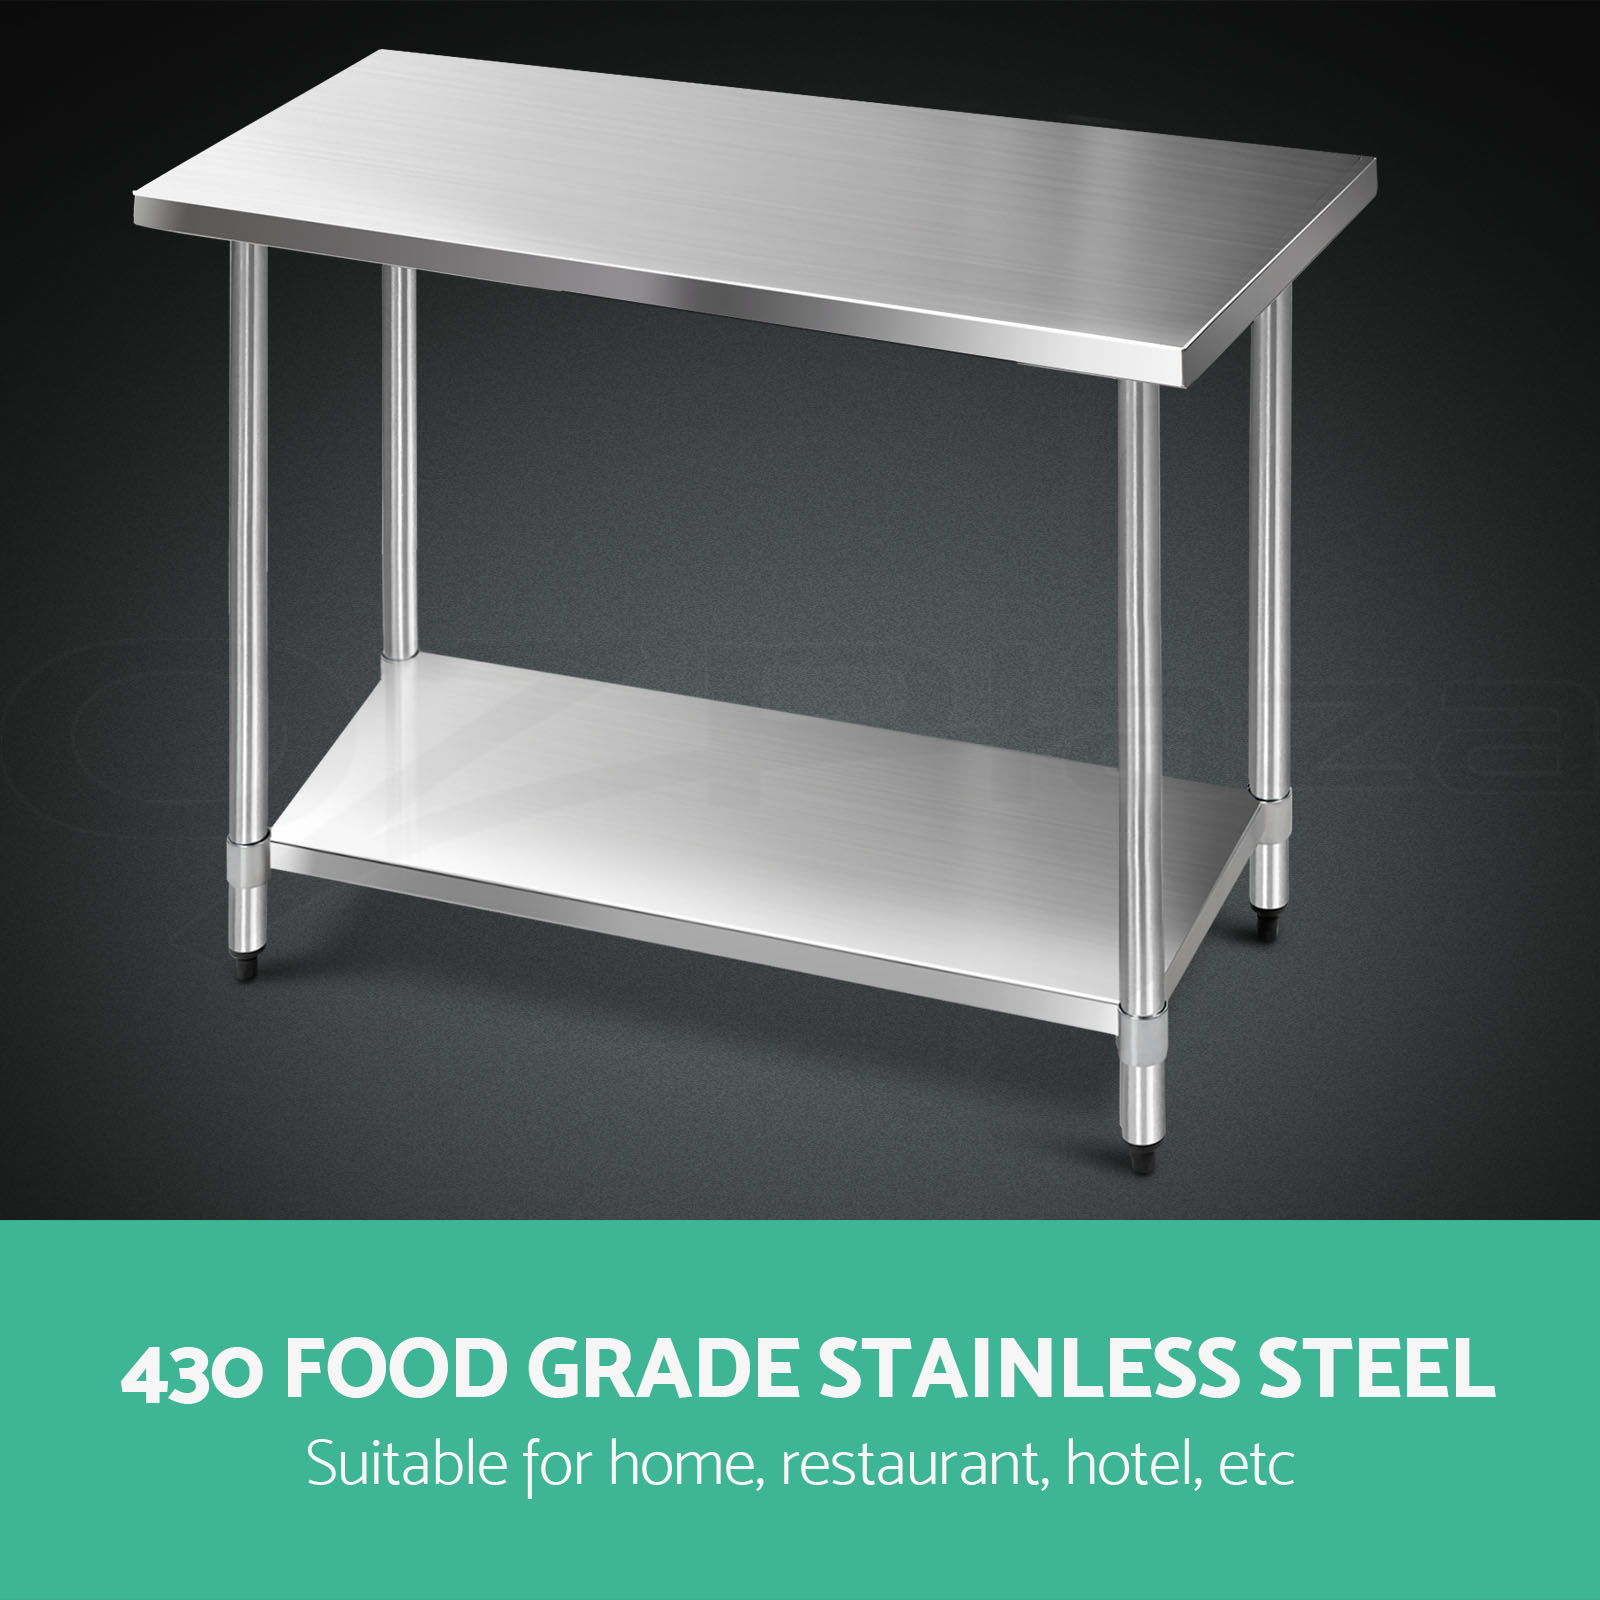 1219x610mm commercial 430 stainless steel kitchen work bench food prep table top ebay. Black Bedroom Furniture Sets. Home Design Ideas